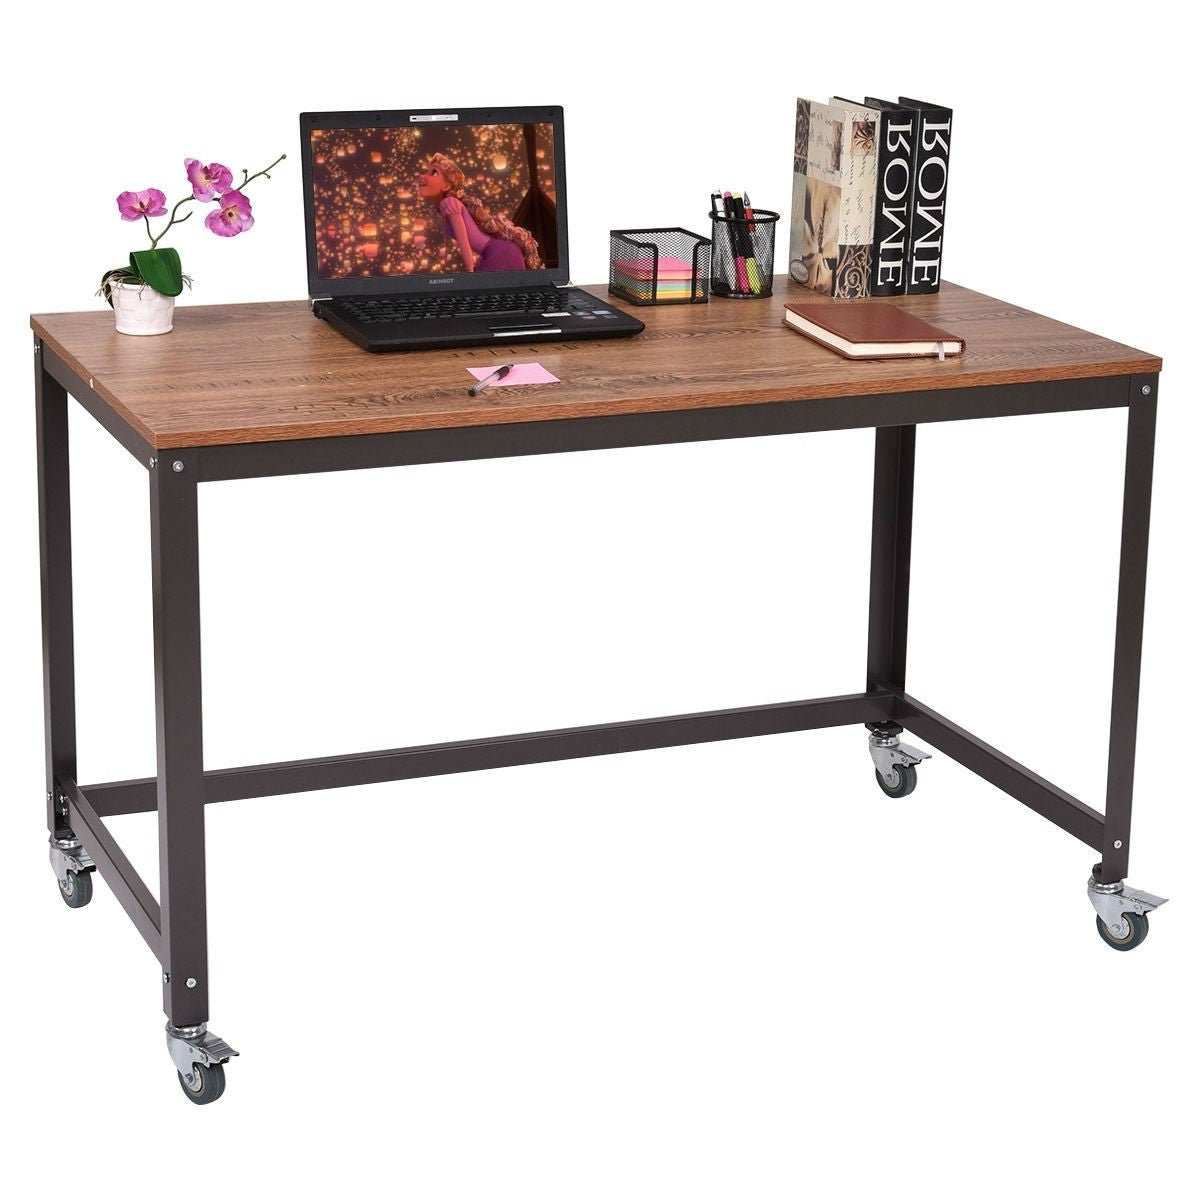 Industrial Modern Steel Frame Wood Top Computer Desk With Locking Wheels Overstock 29083909